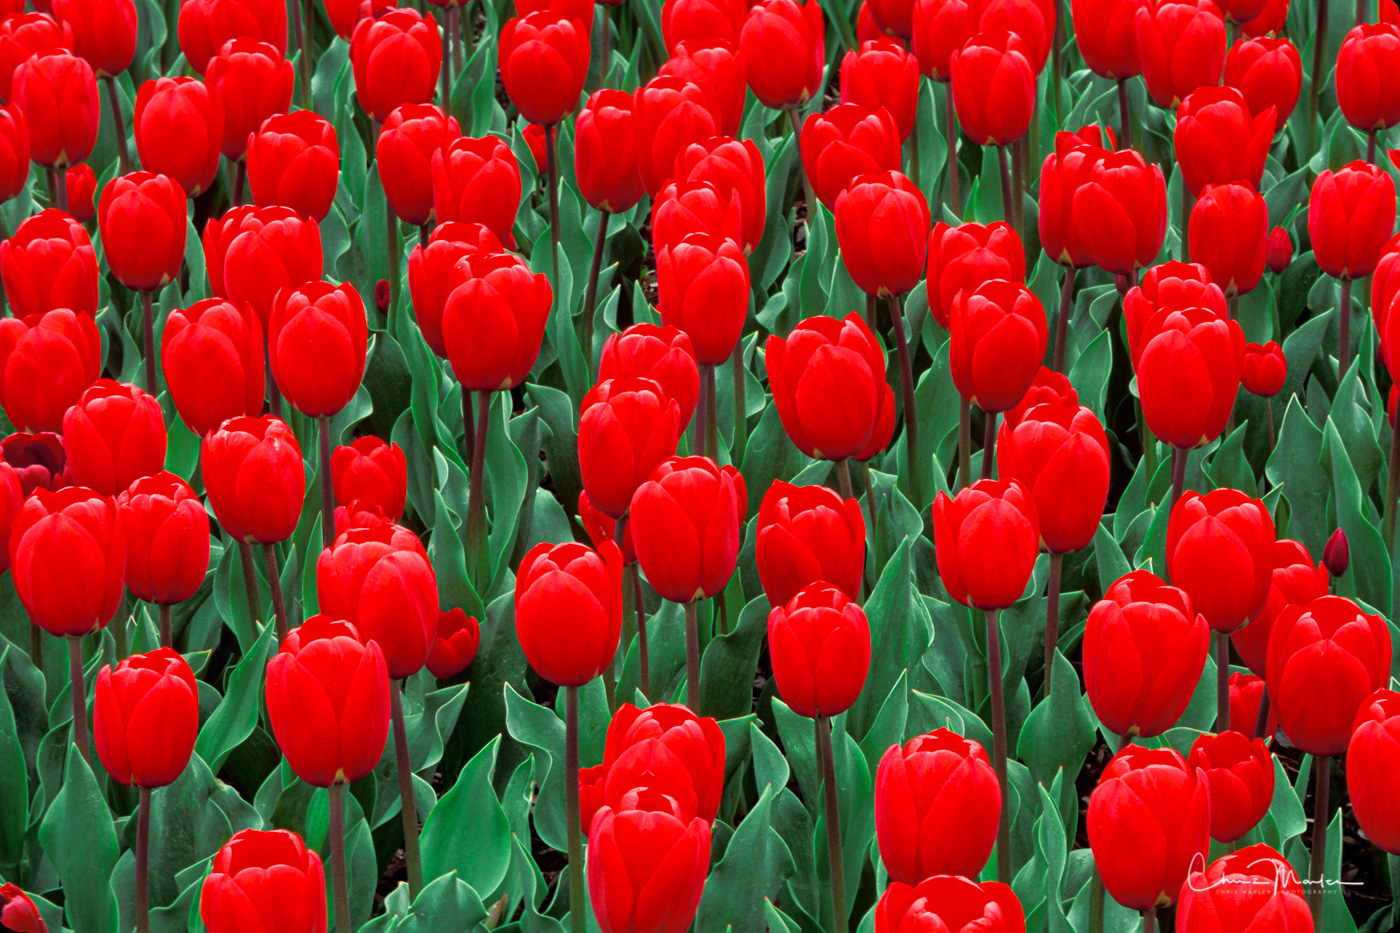 If it's a sea of red you are looking for, this is your image.  The Skagit Valley tulip fields vary in color and size, but the...